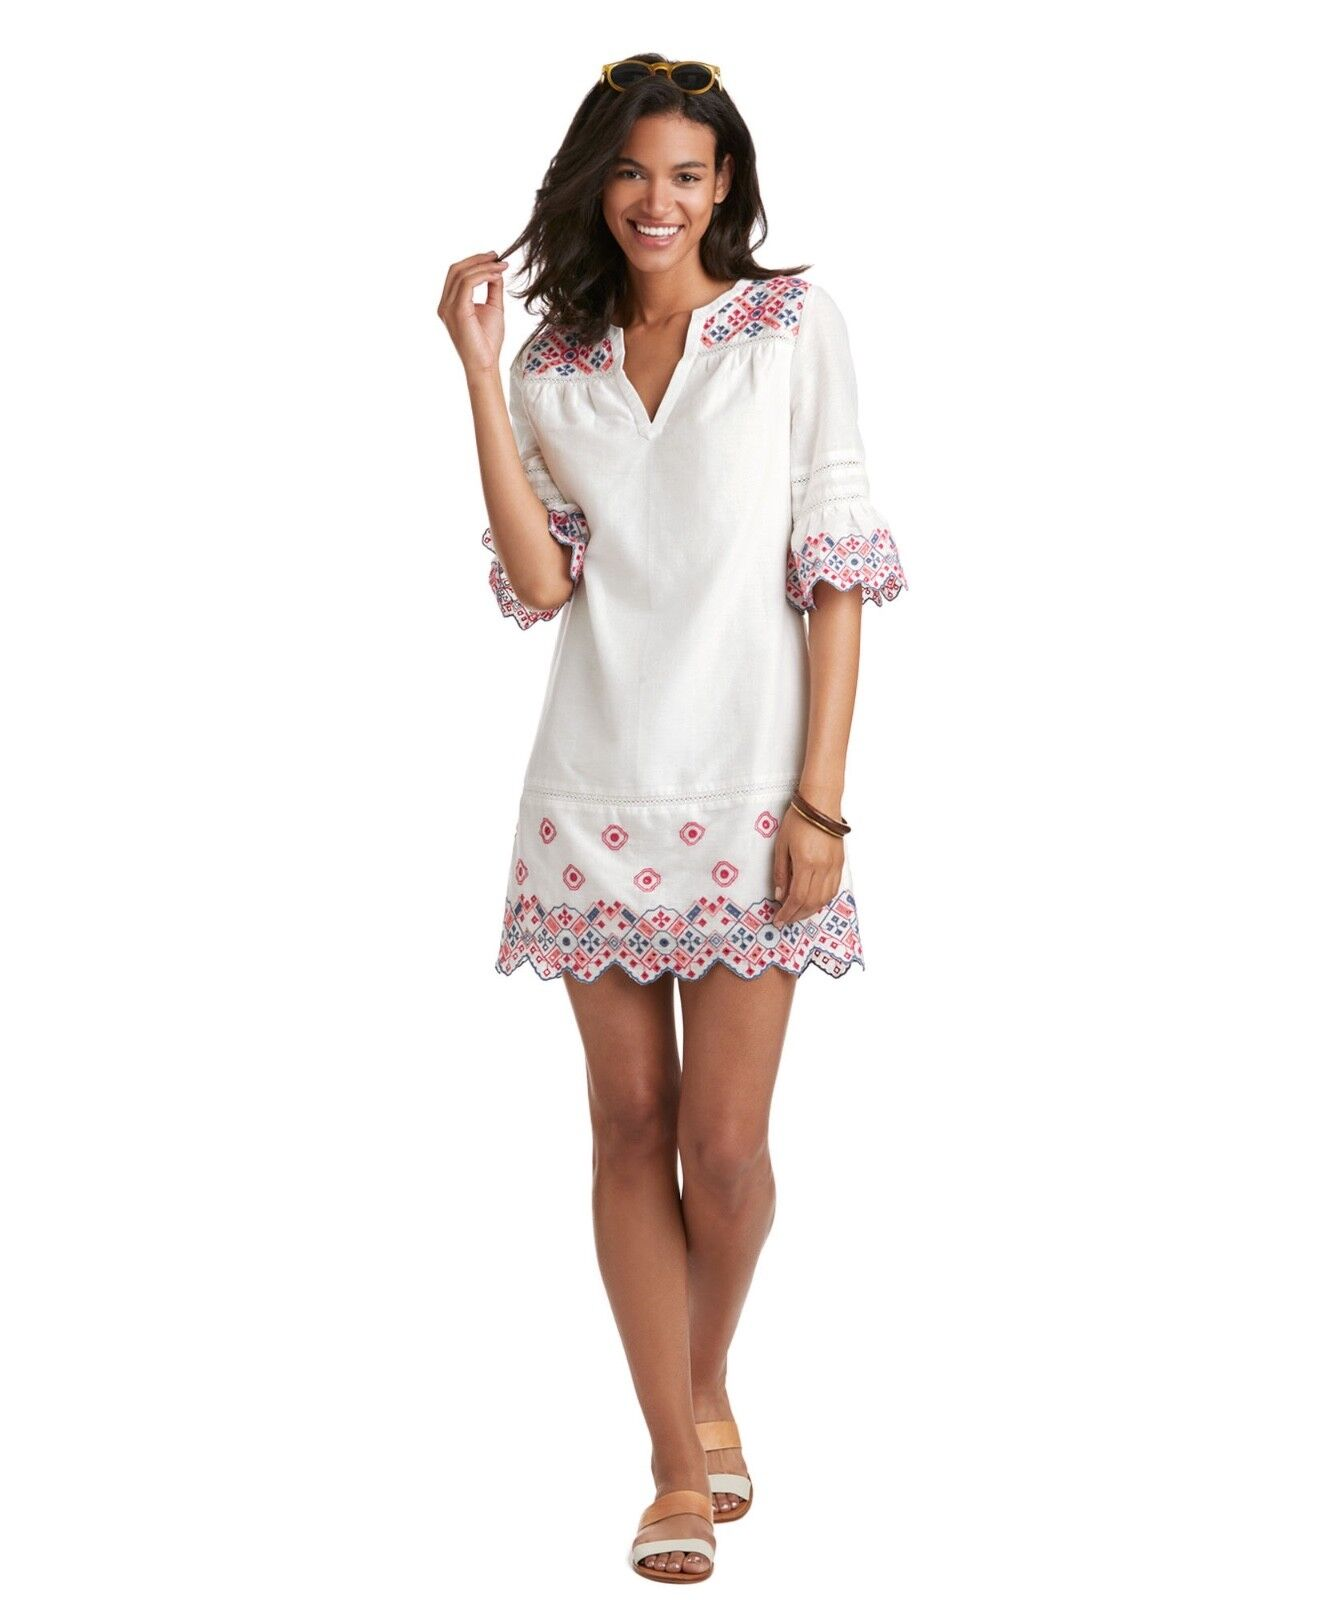 VINEYARD VINES MULTI colorD EMBROIDERED EYELET SHIFT DRESS, NWT  148, 00